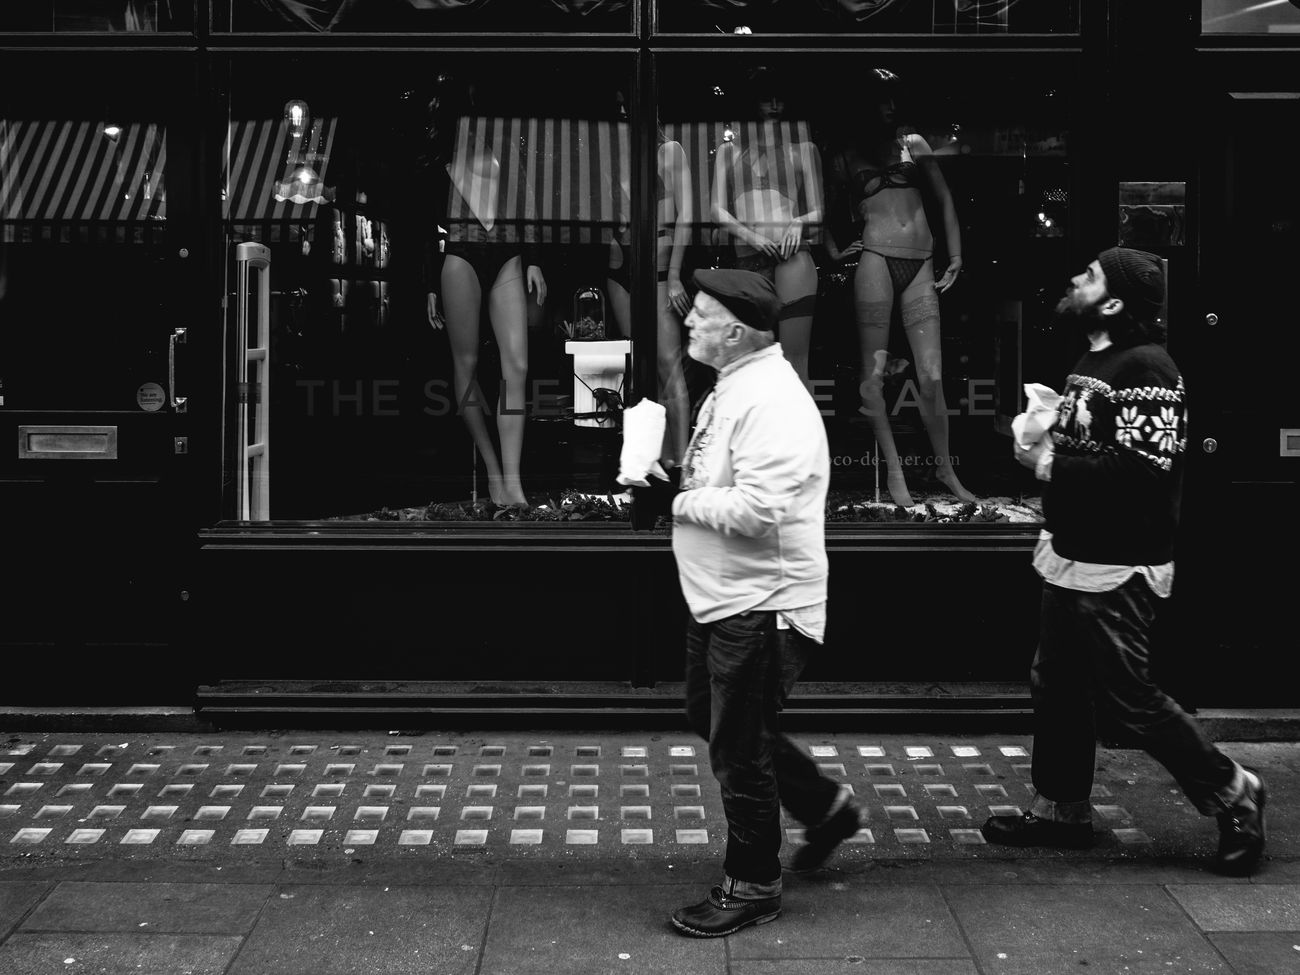 Sightseeing Streetphotography Street People Maxgor Black And White Photography Black And White Olympus Pen F Street Photography Stranger City Life London Prime Lens Monochrome Photography 35mm Rawstreets Cıty Lifestyles Candid Maxgor.com Streetlife Soho